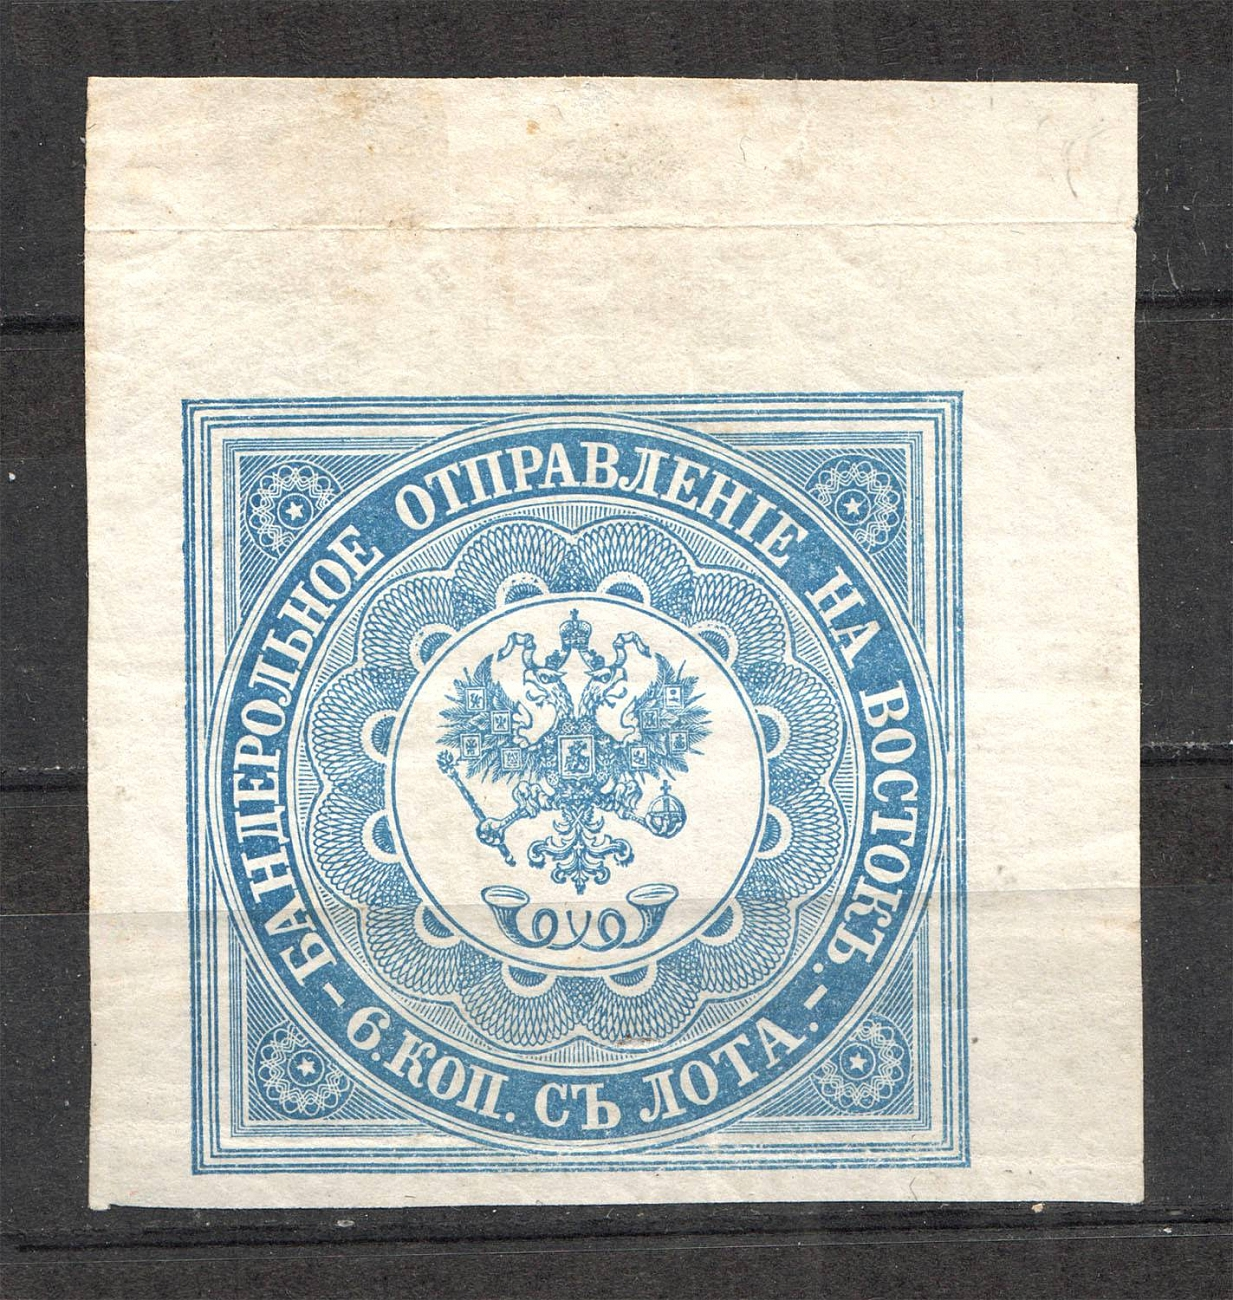 Lot 419 - Russia: Empire & Offices Abroad offices abroad -  OldLouis Auctions Russia: Empire & Offices Abroad - Rare Stamps Auction №8